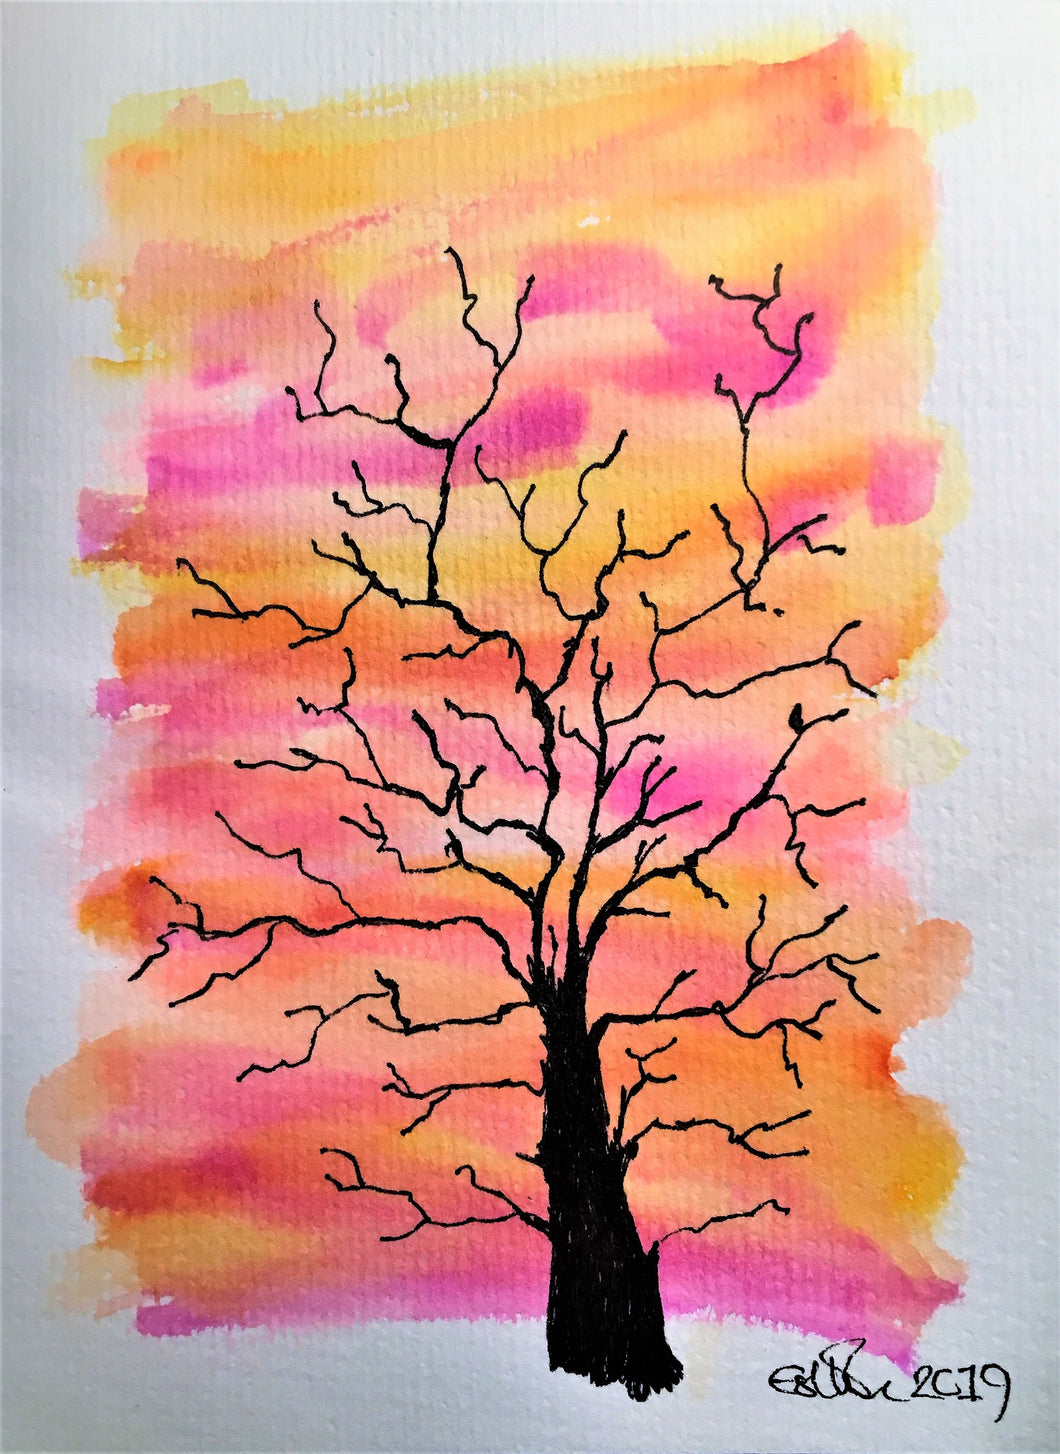 Handpainted Watercolour Greeting Card - Winter Tree at Sunset Pink/Orange - eDgE dEsiGn London